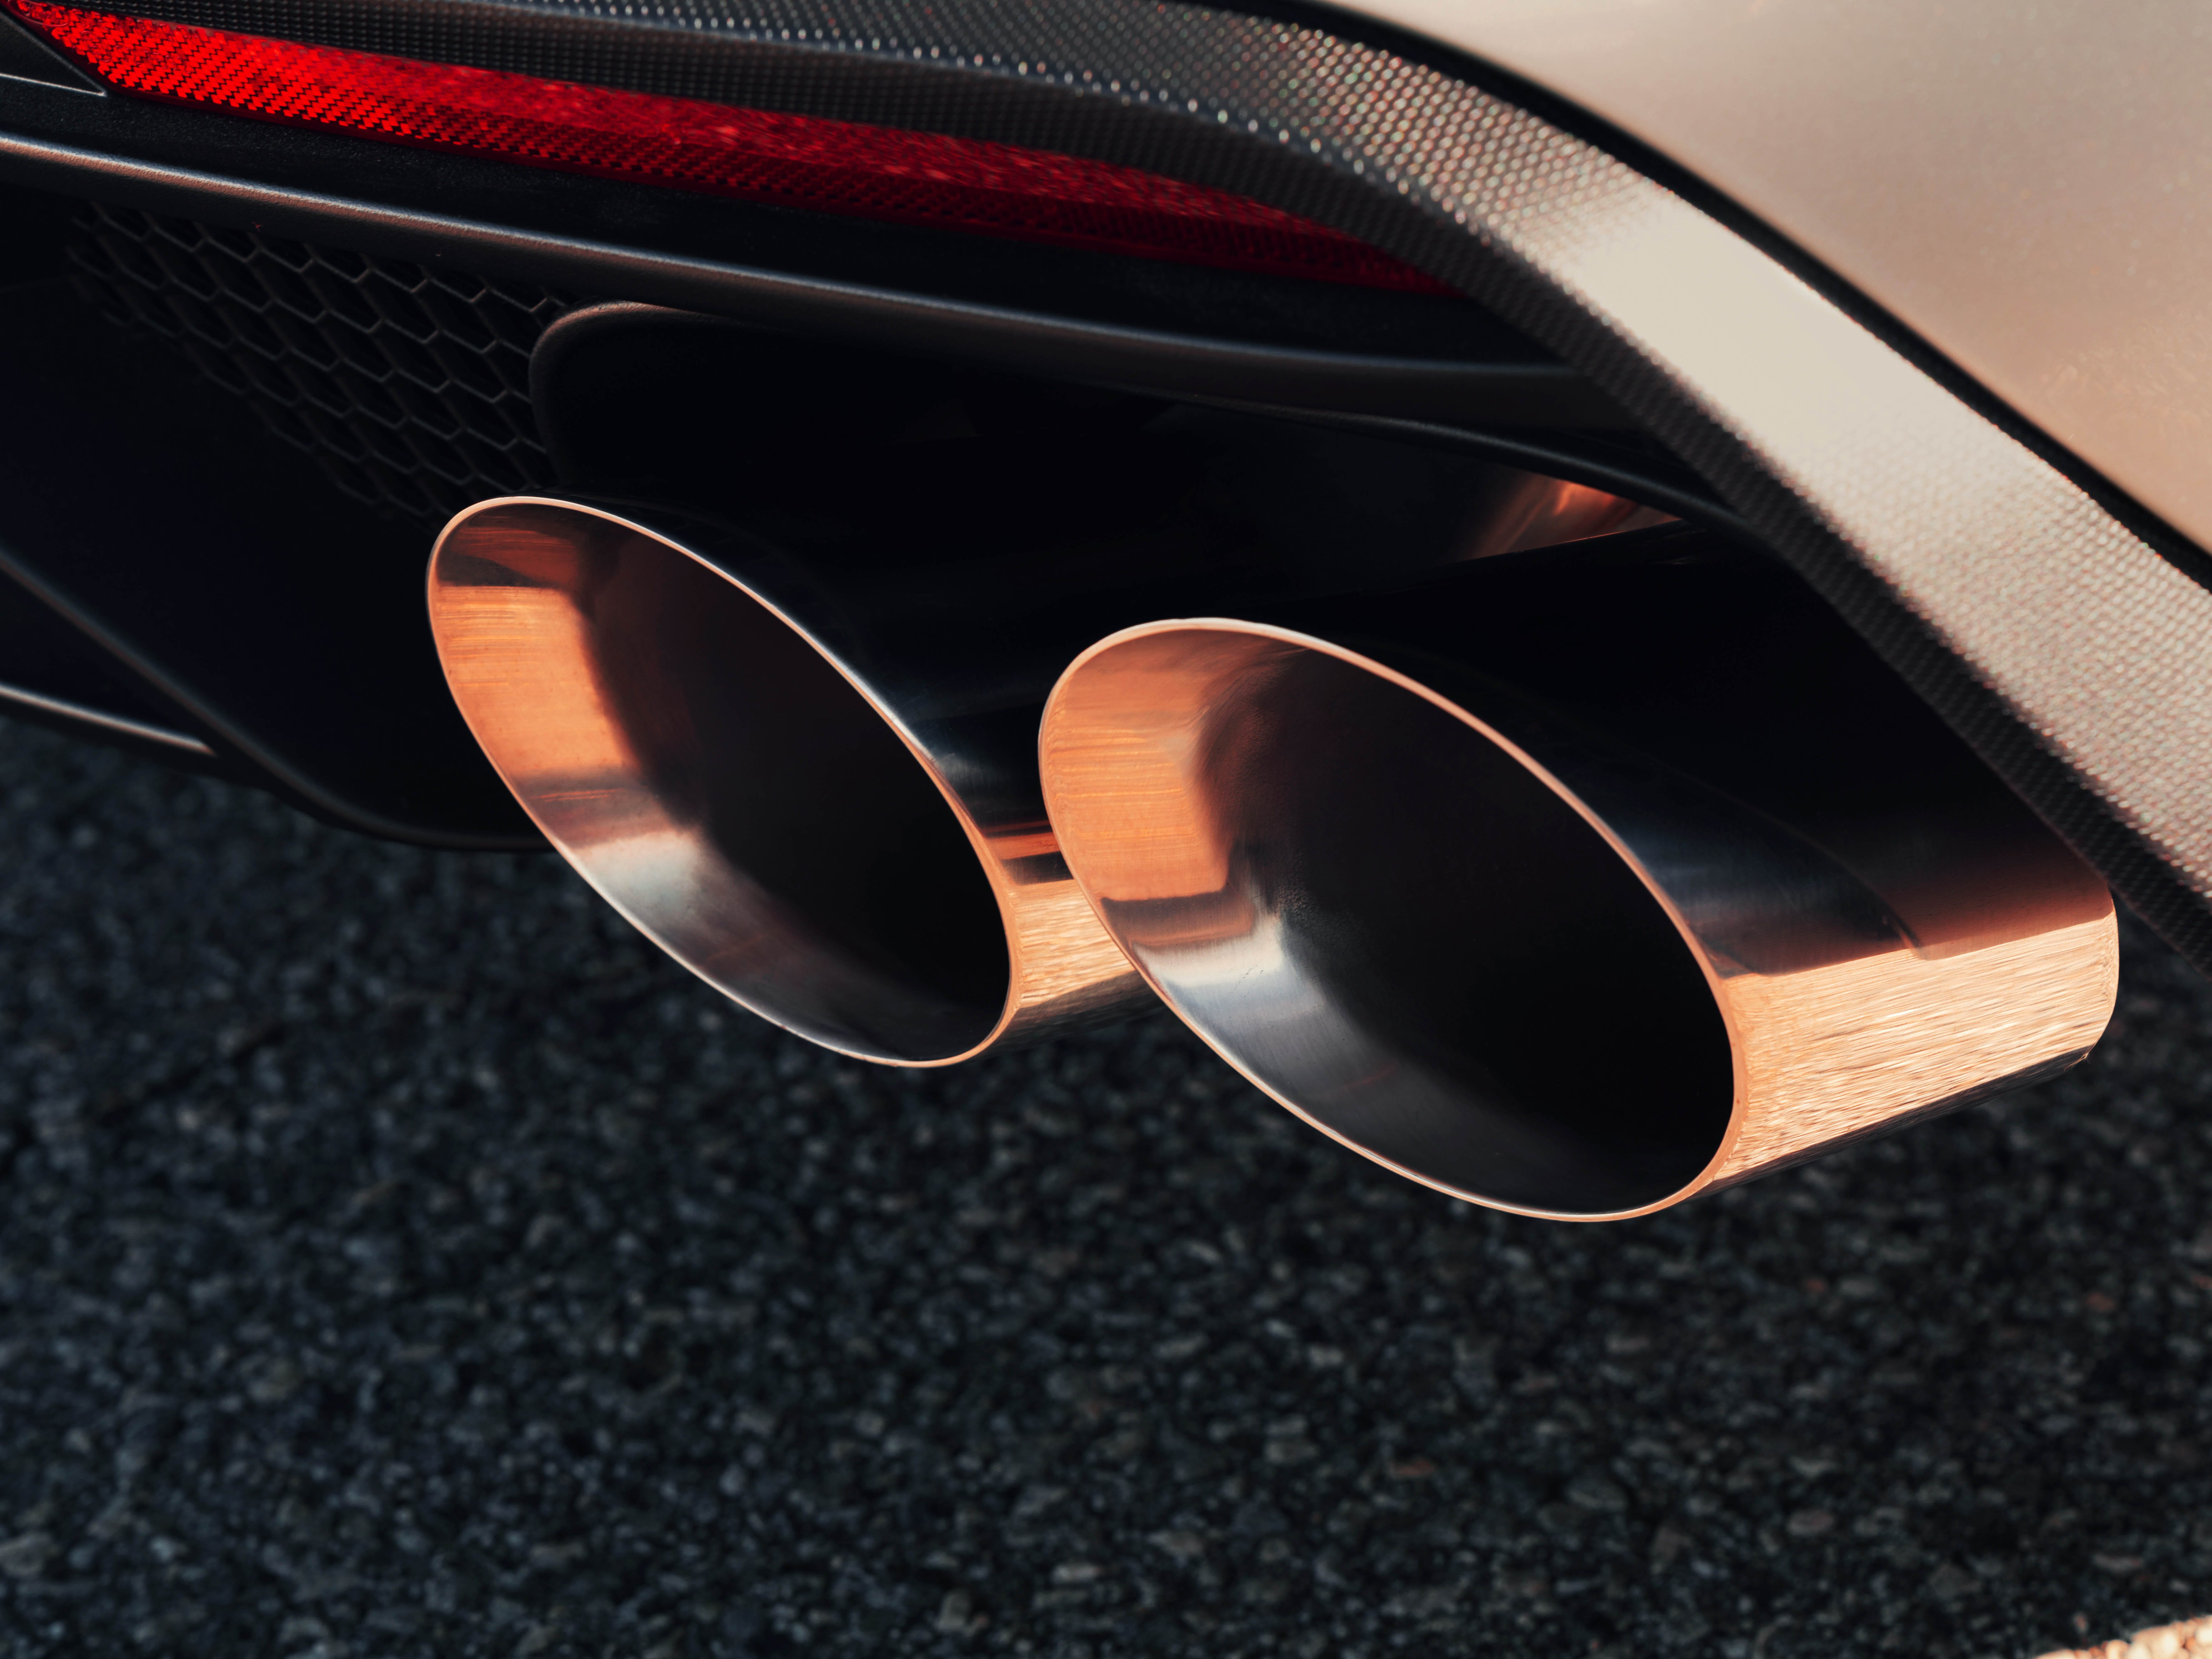 These are dual tail pipes on the Mustang GT500.